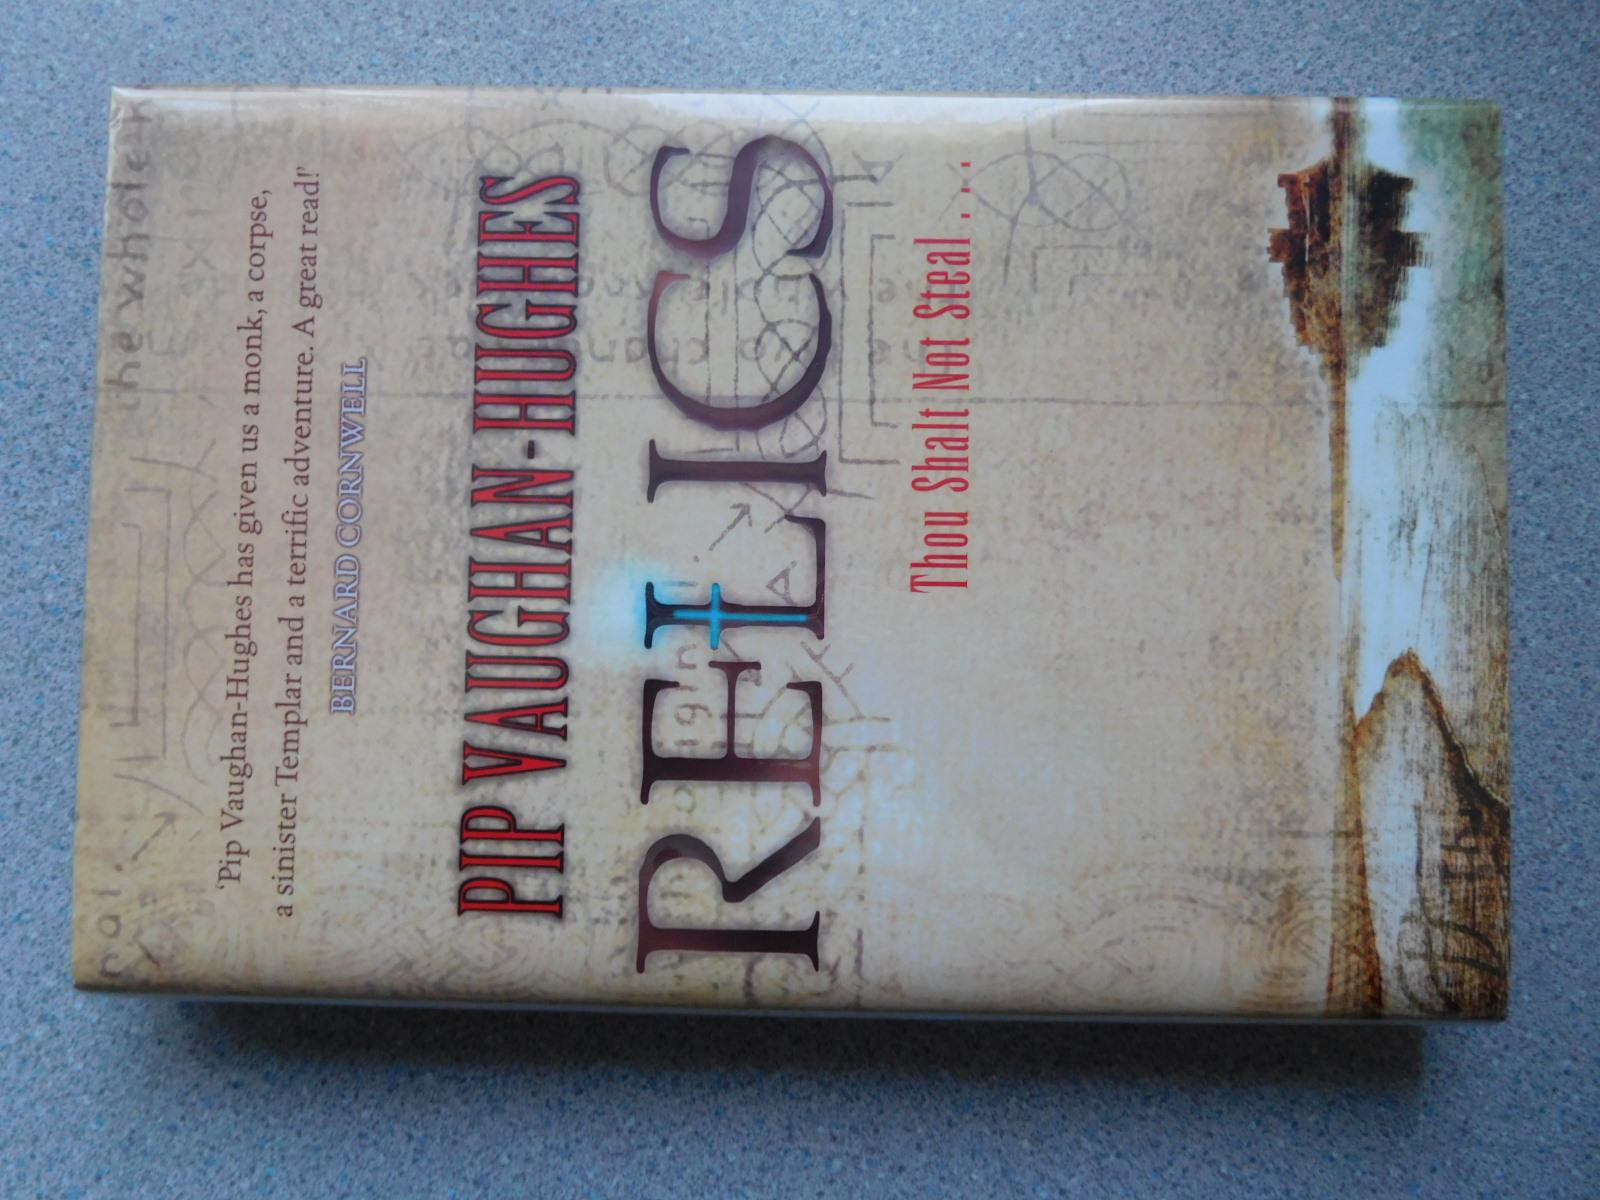 RELICS_THOU_SHALT_NOT_STEAL_Pristine_Signed_&_Dated_First_Edition_Debut_Novel_VaughanHughes_Pip_Comme_Neuf_Couverture_rigide